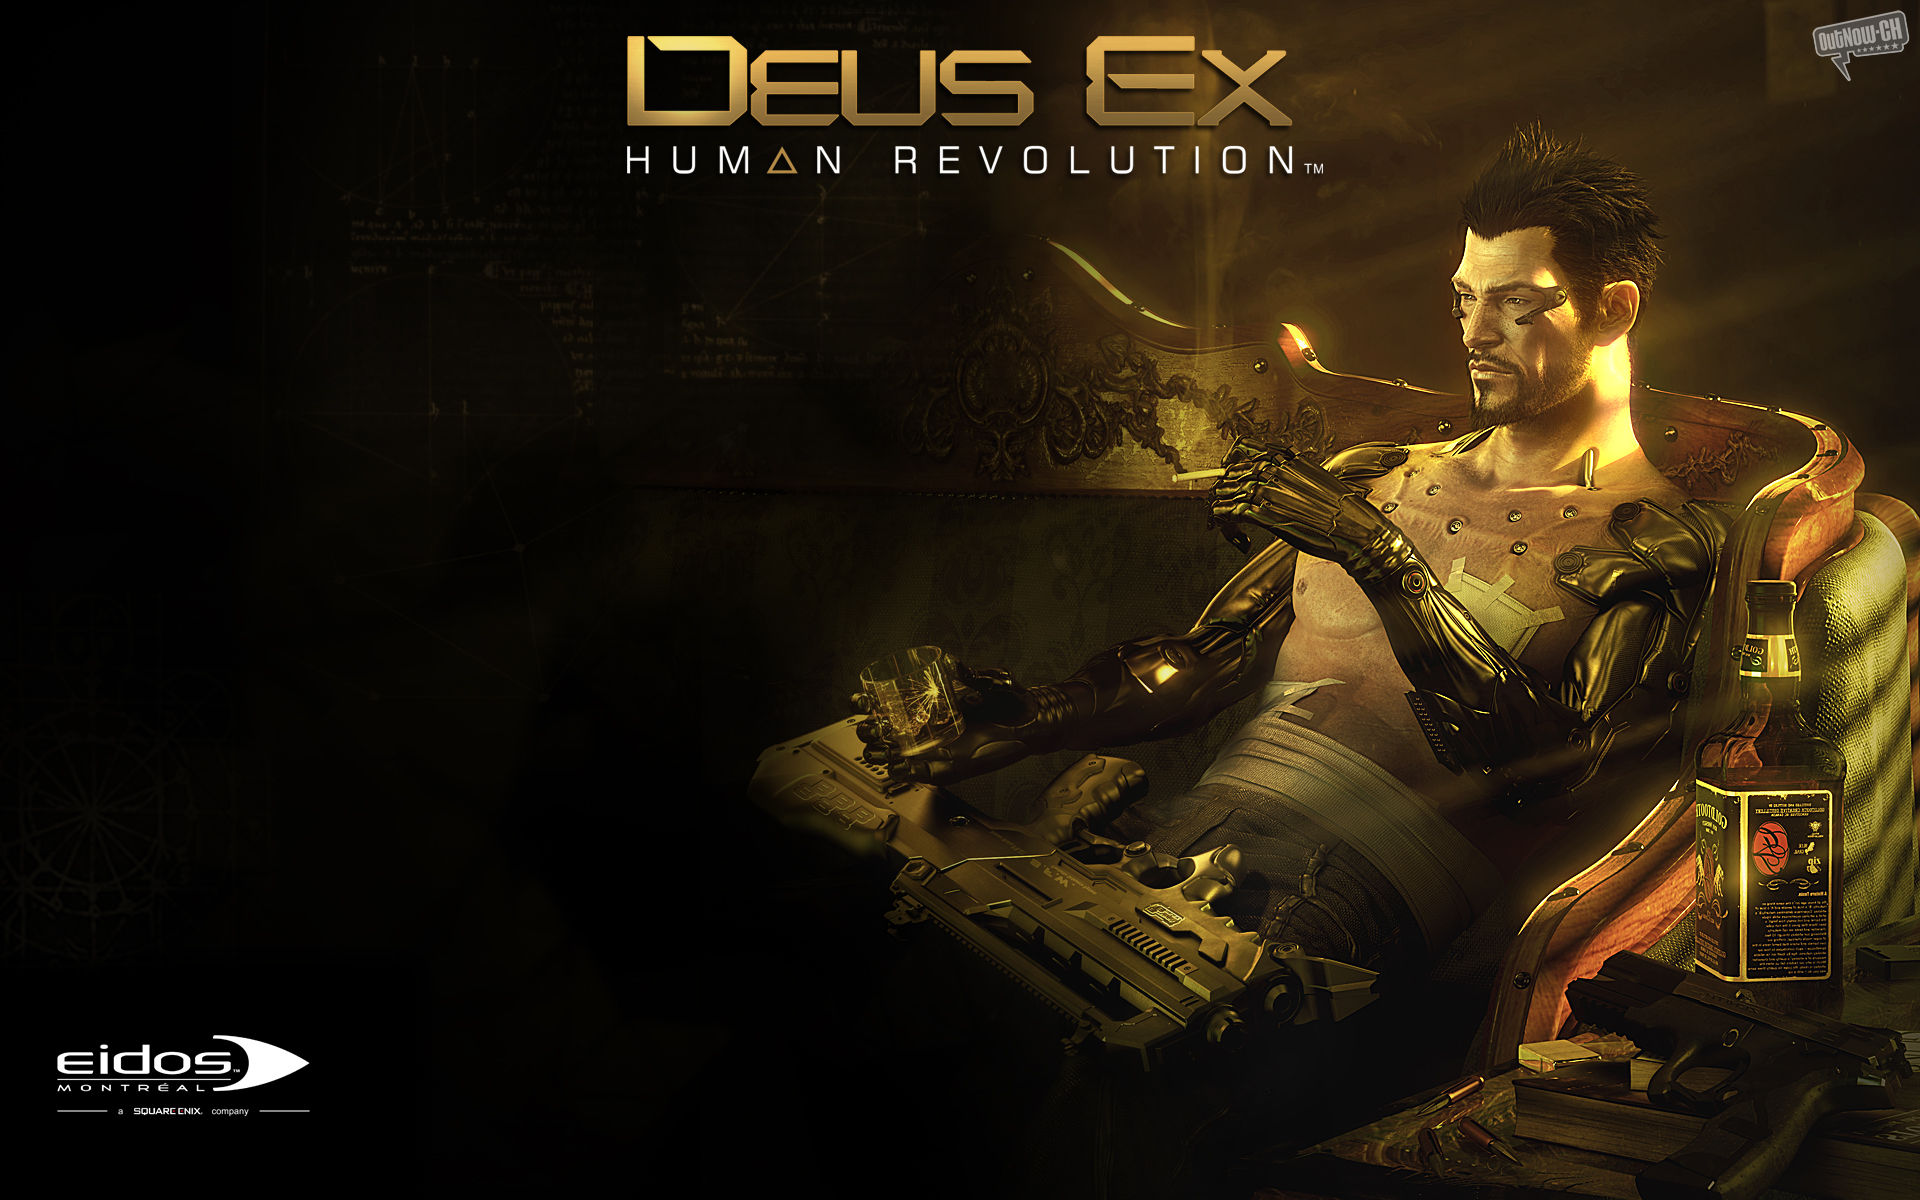 Image Deus Ex Human Revolution Wallpapers And Stock Photos